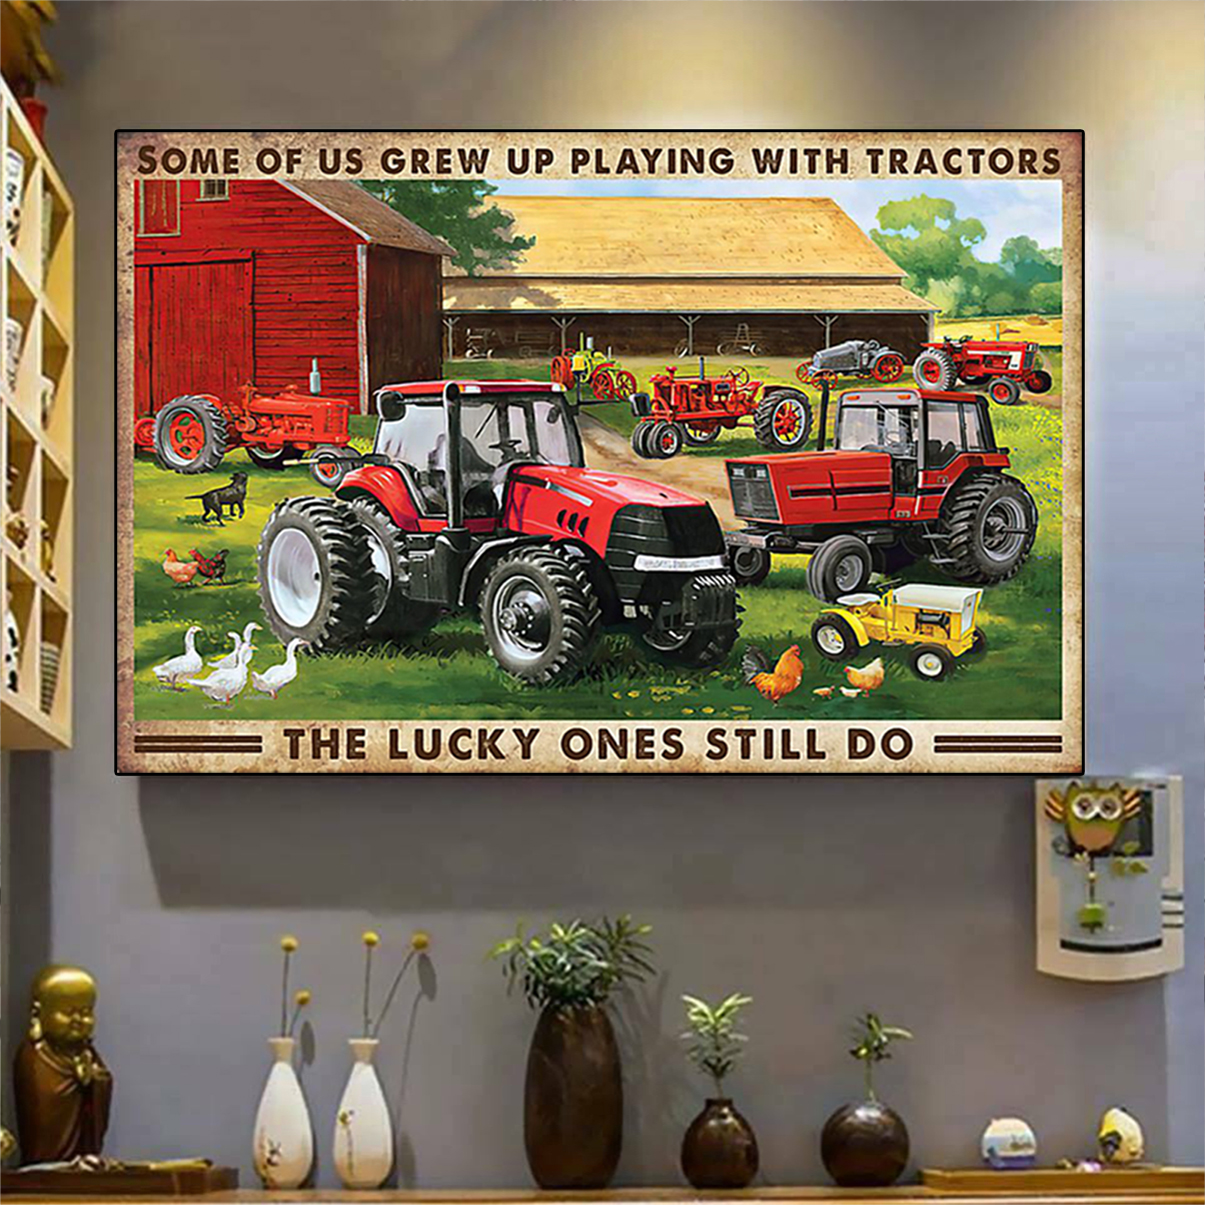 Some of us grew up playing with tractors the lucky one still do poster A3